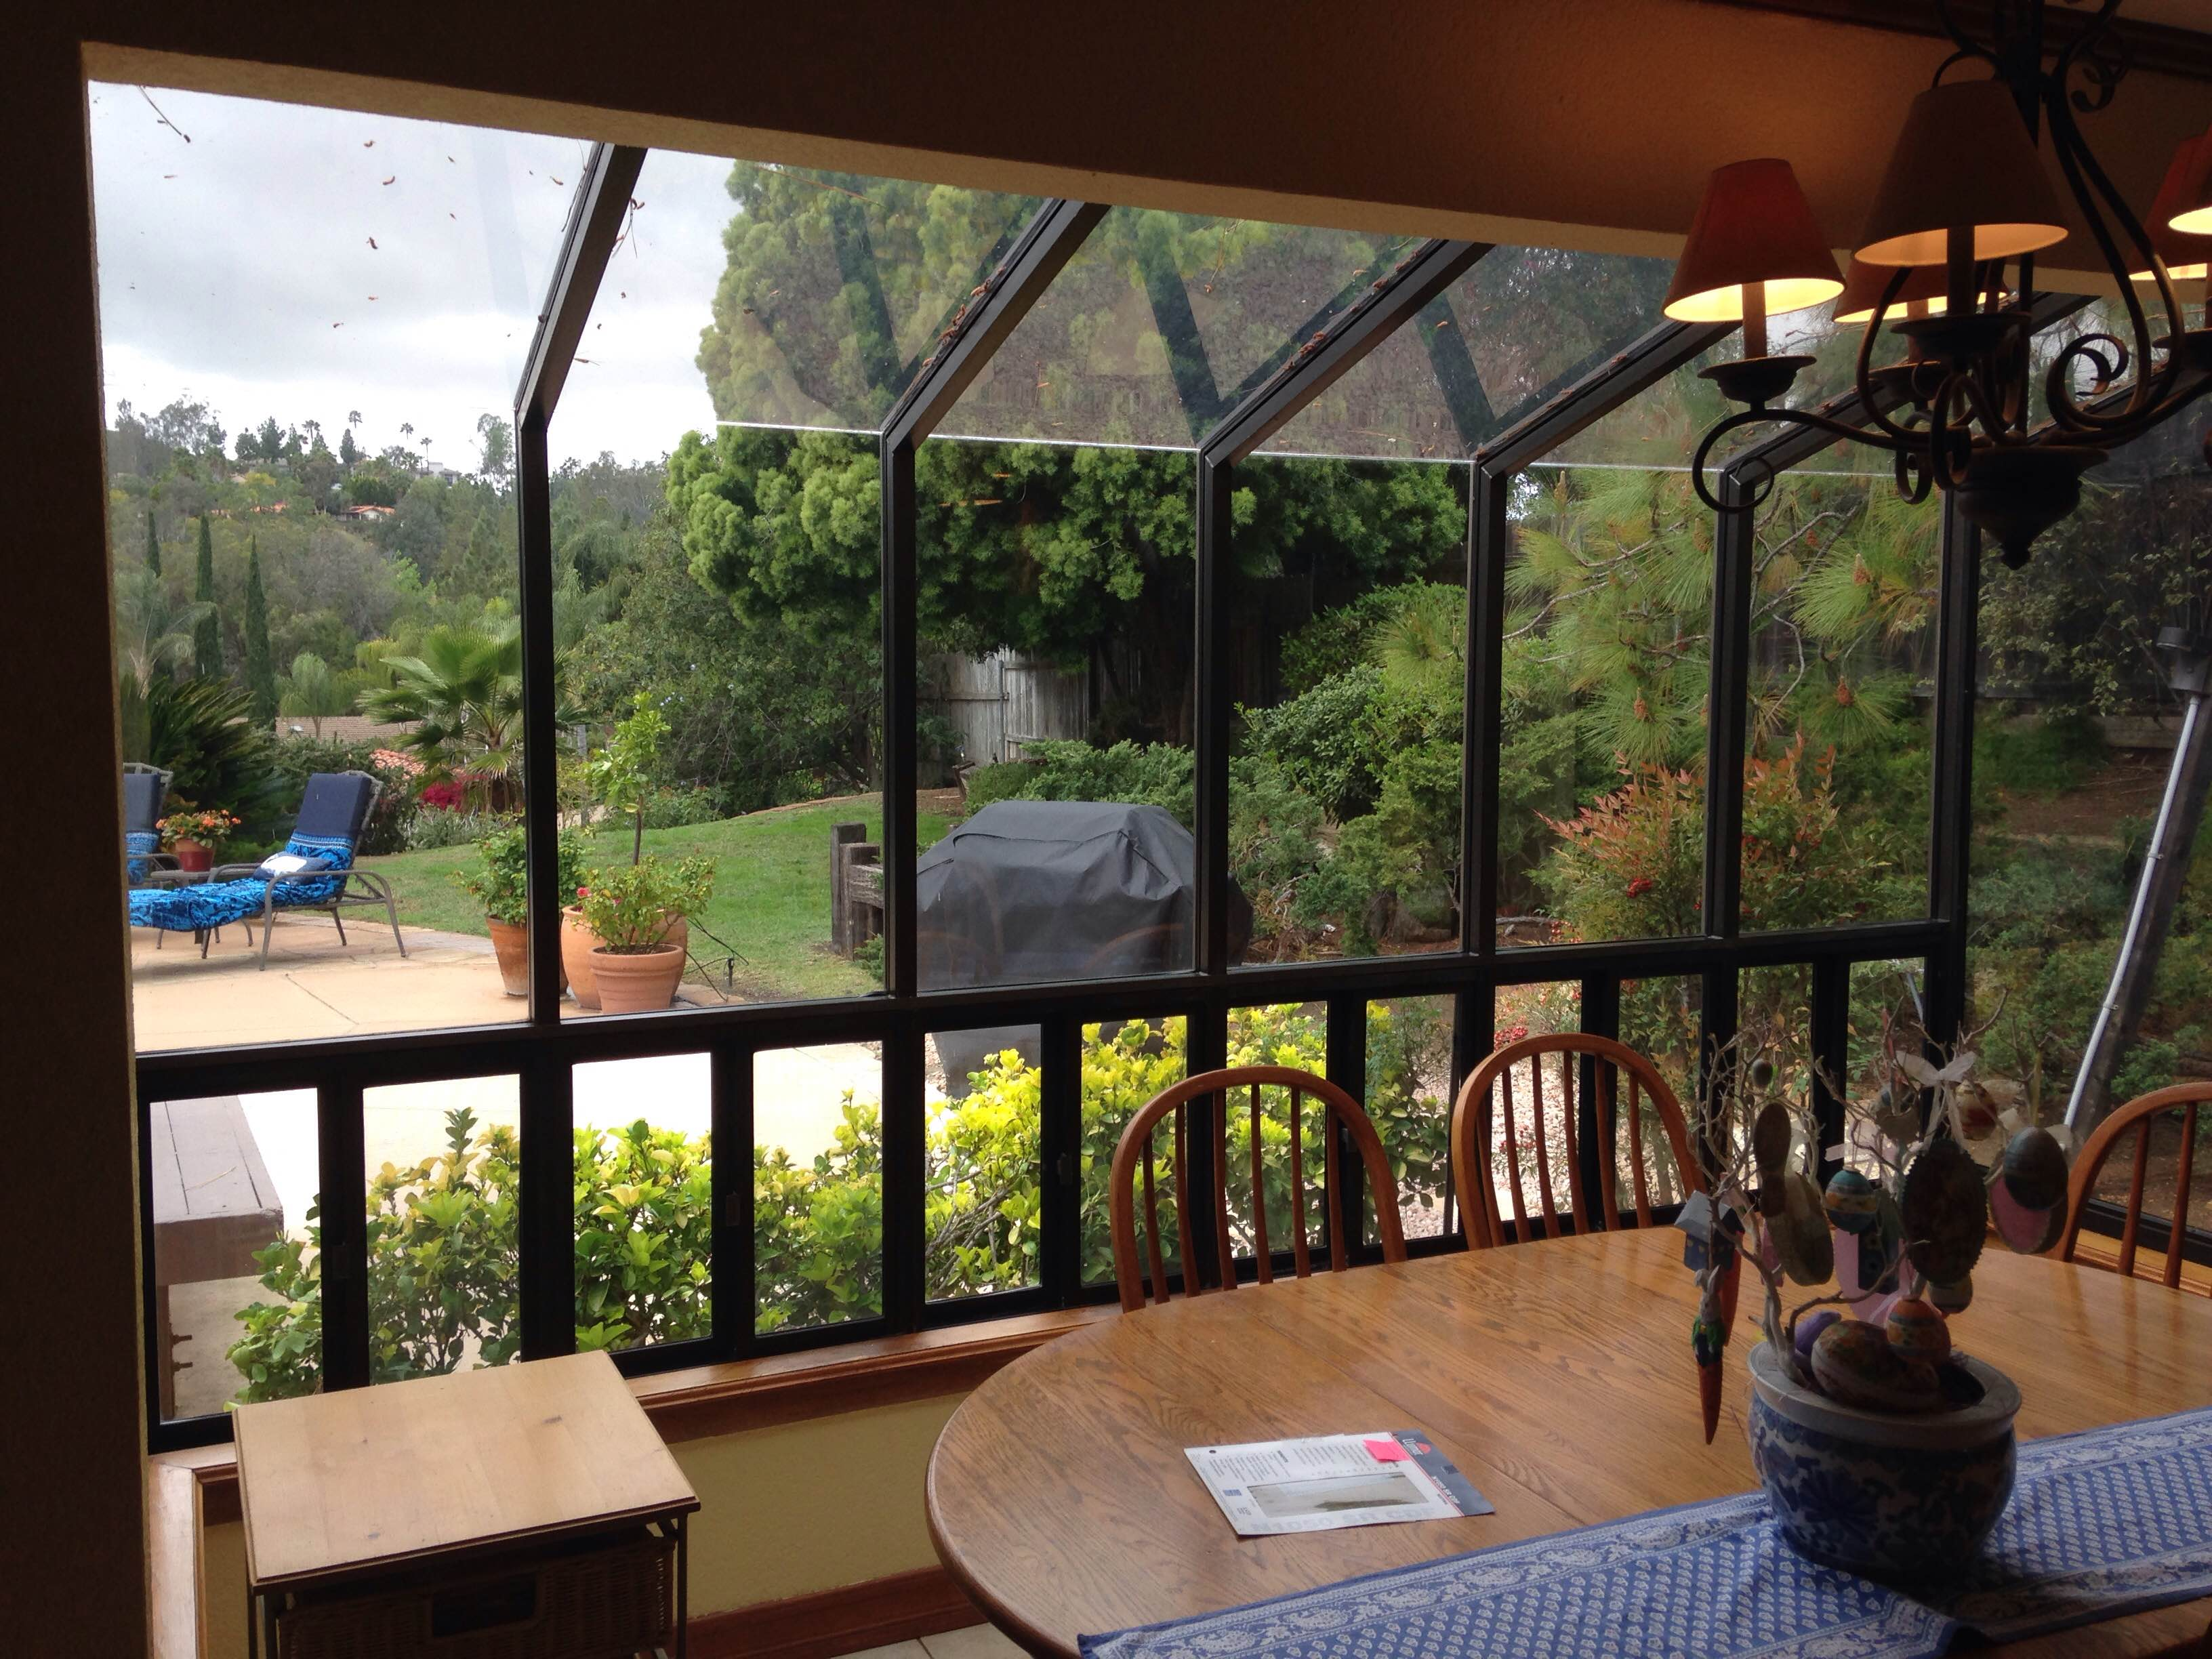 Heat Reducing Window Film- Pasadena, CA Residence